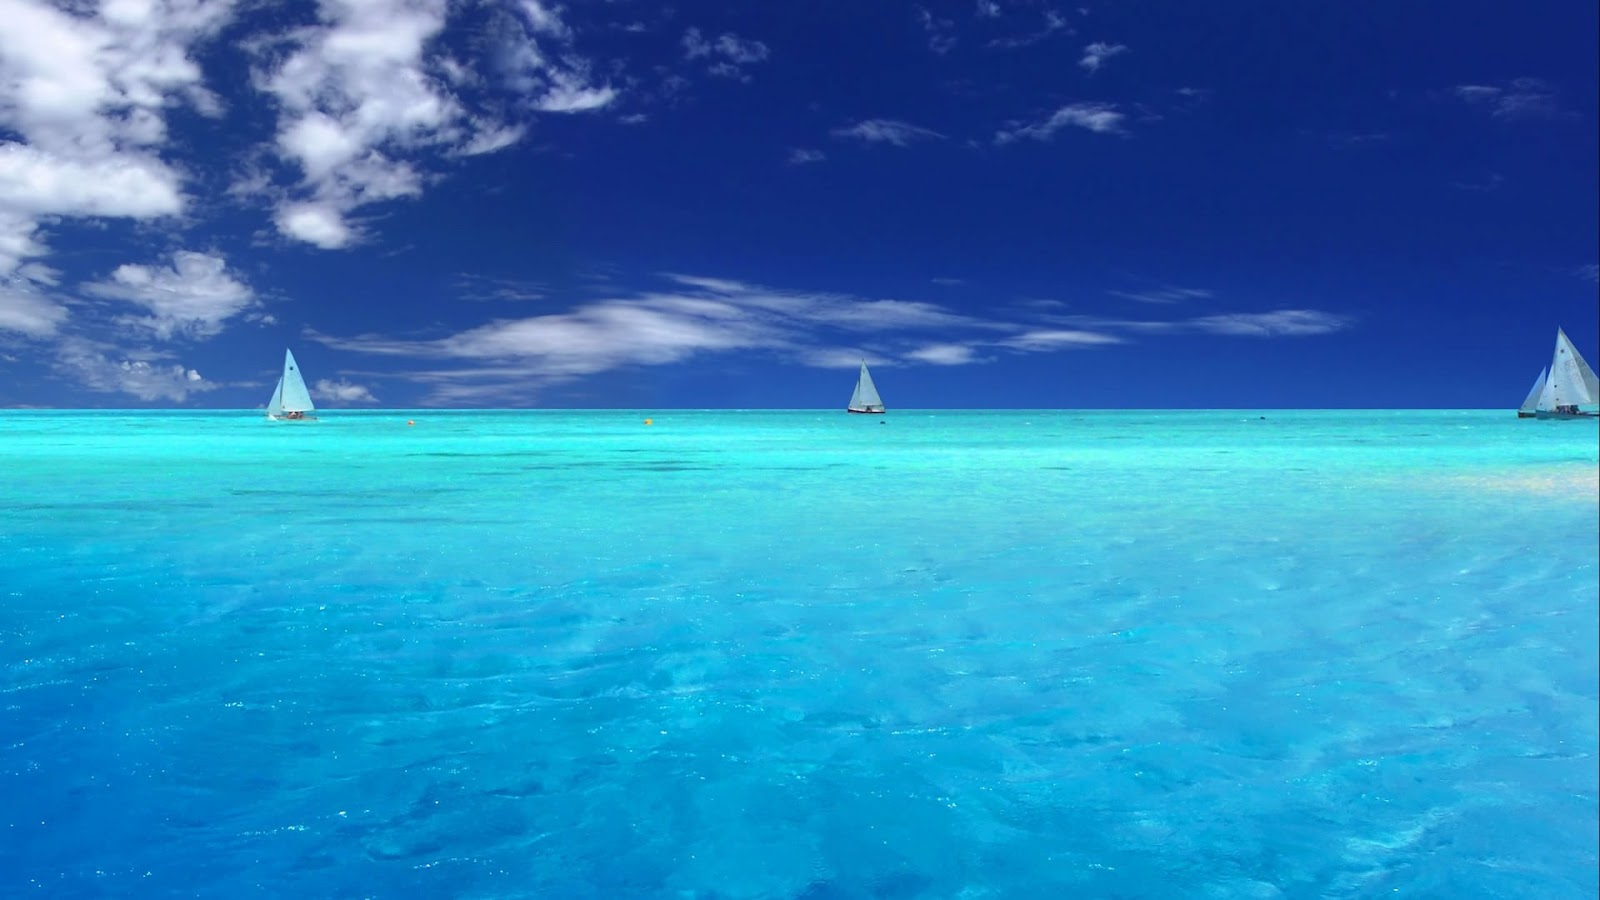 Blue Ocean Backgrounds 1600x900